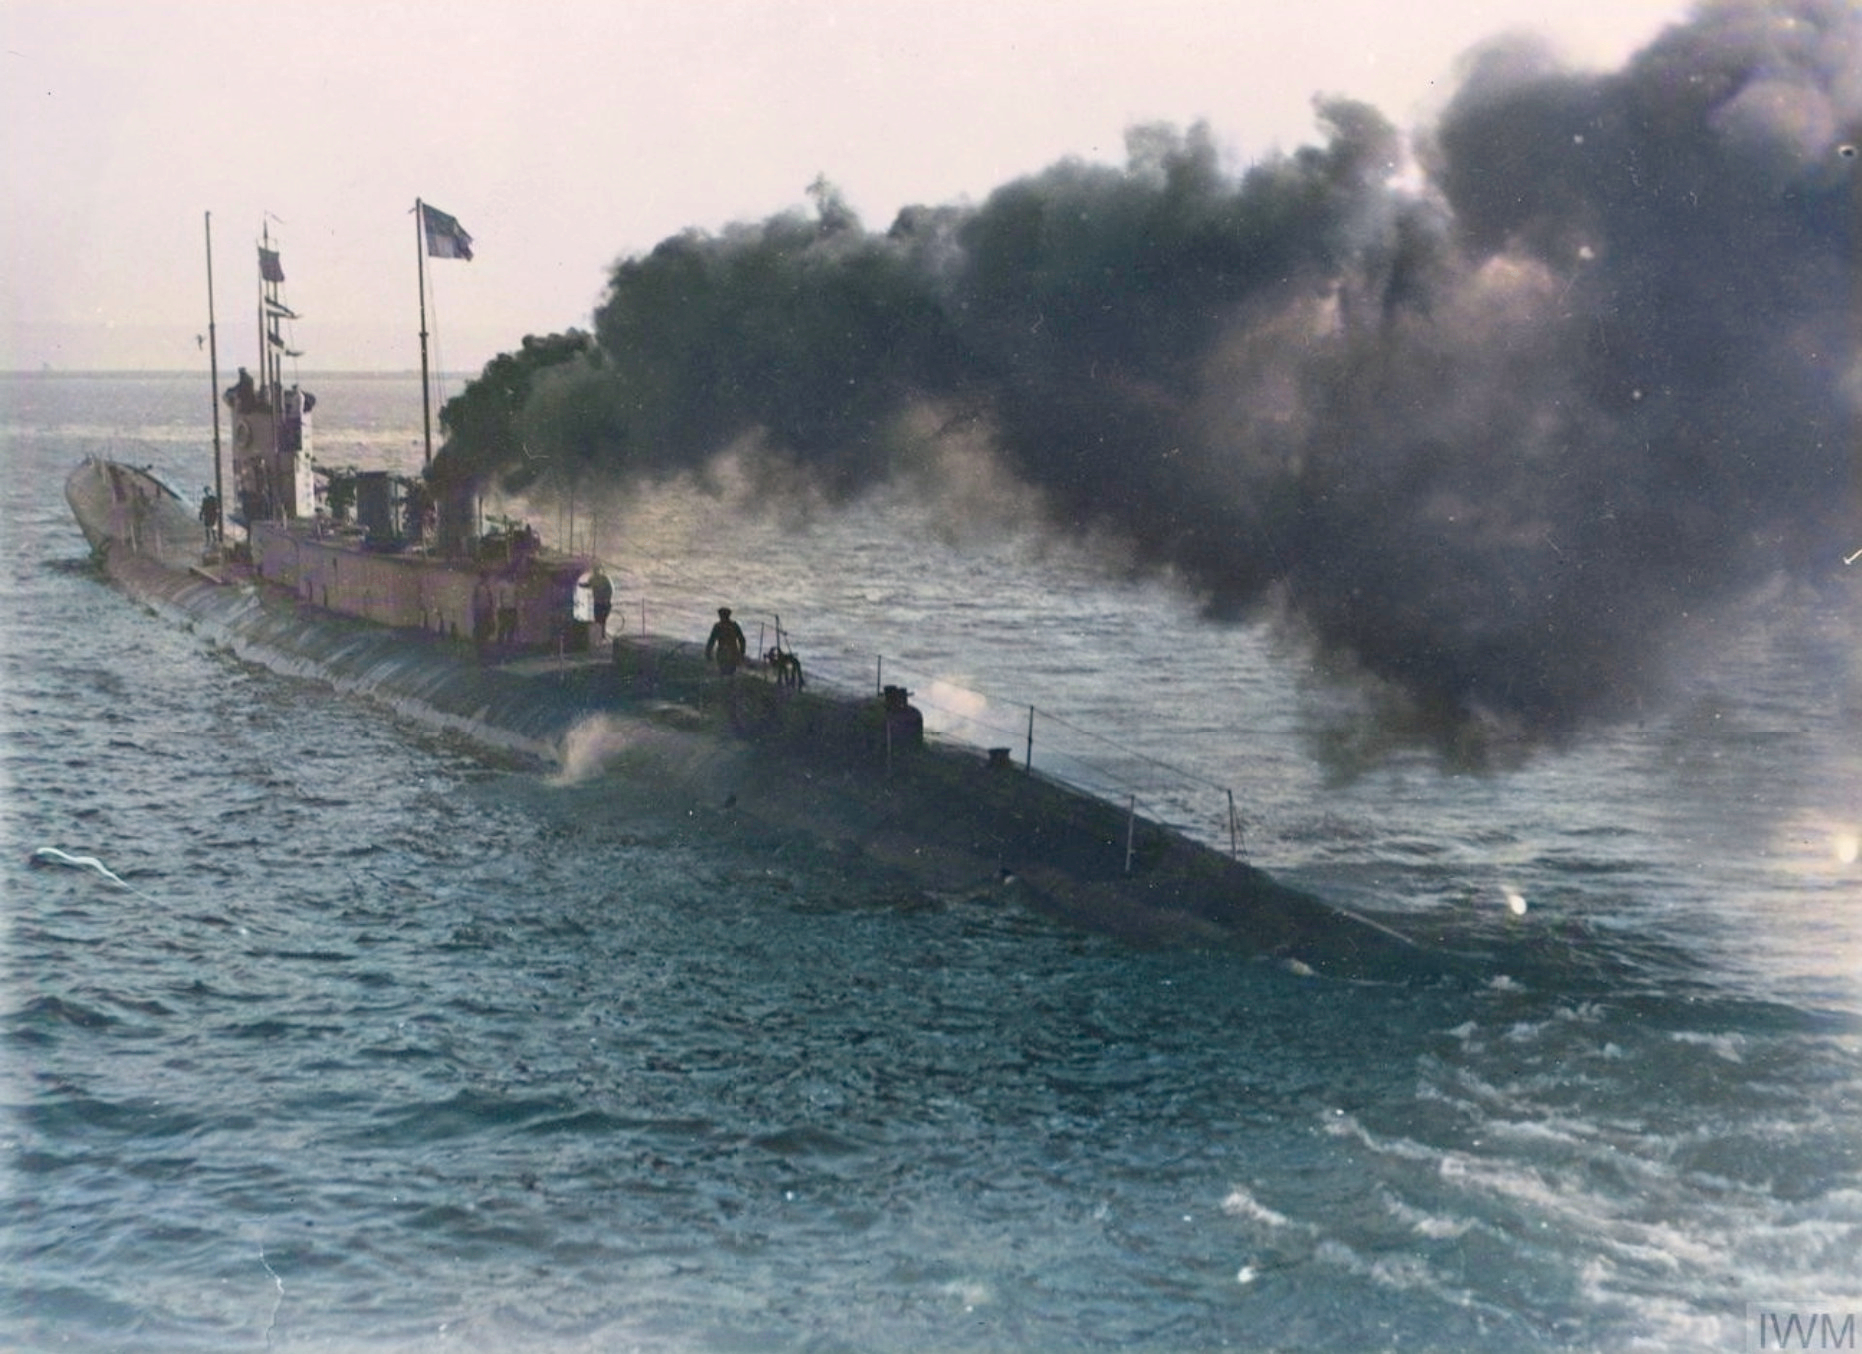 The British submarine K2 proceeding to the assistance of a ship in distress in the English Channel, 1922.